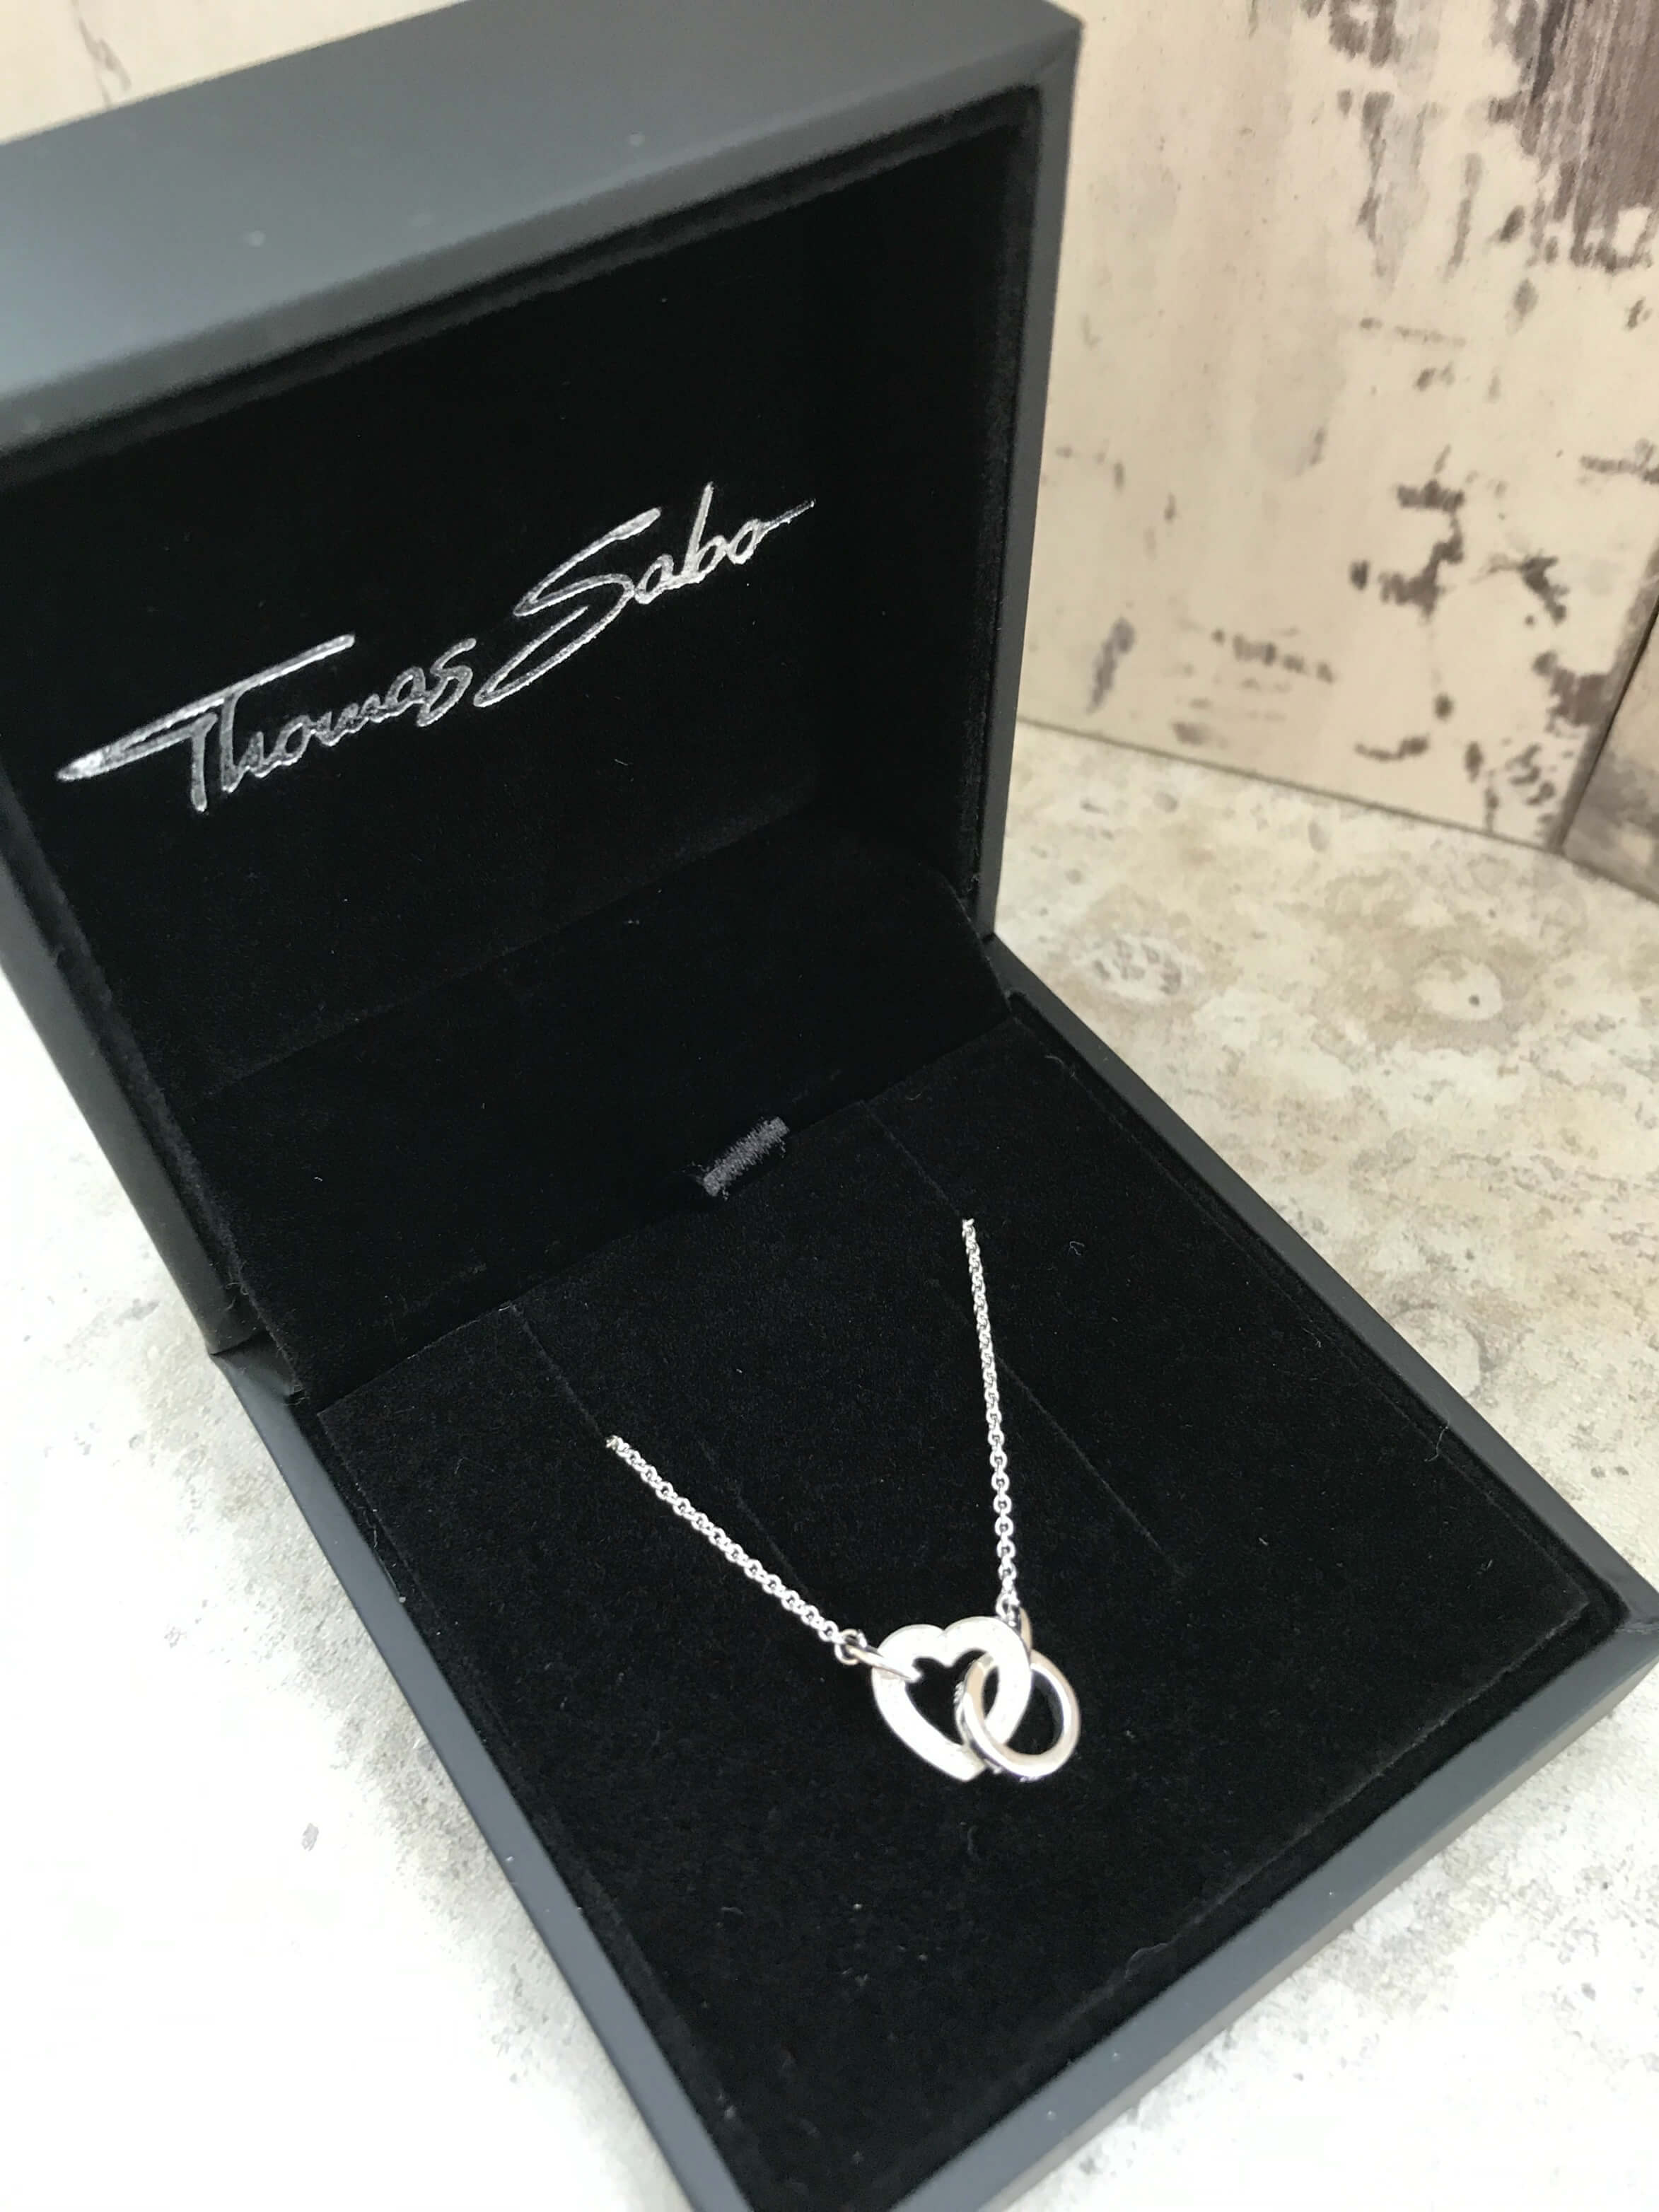 Mothers Day Jewellery - Thomas Sabo Heart Link necklace in presentation box